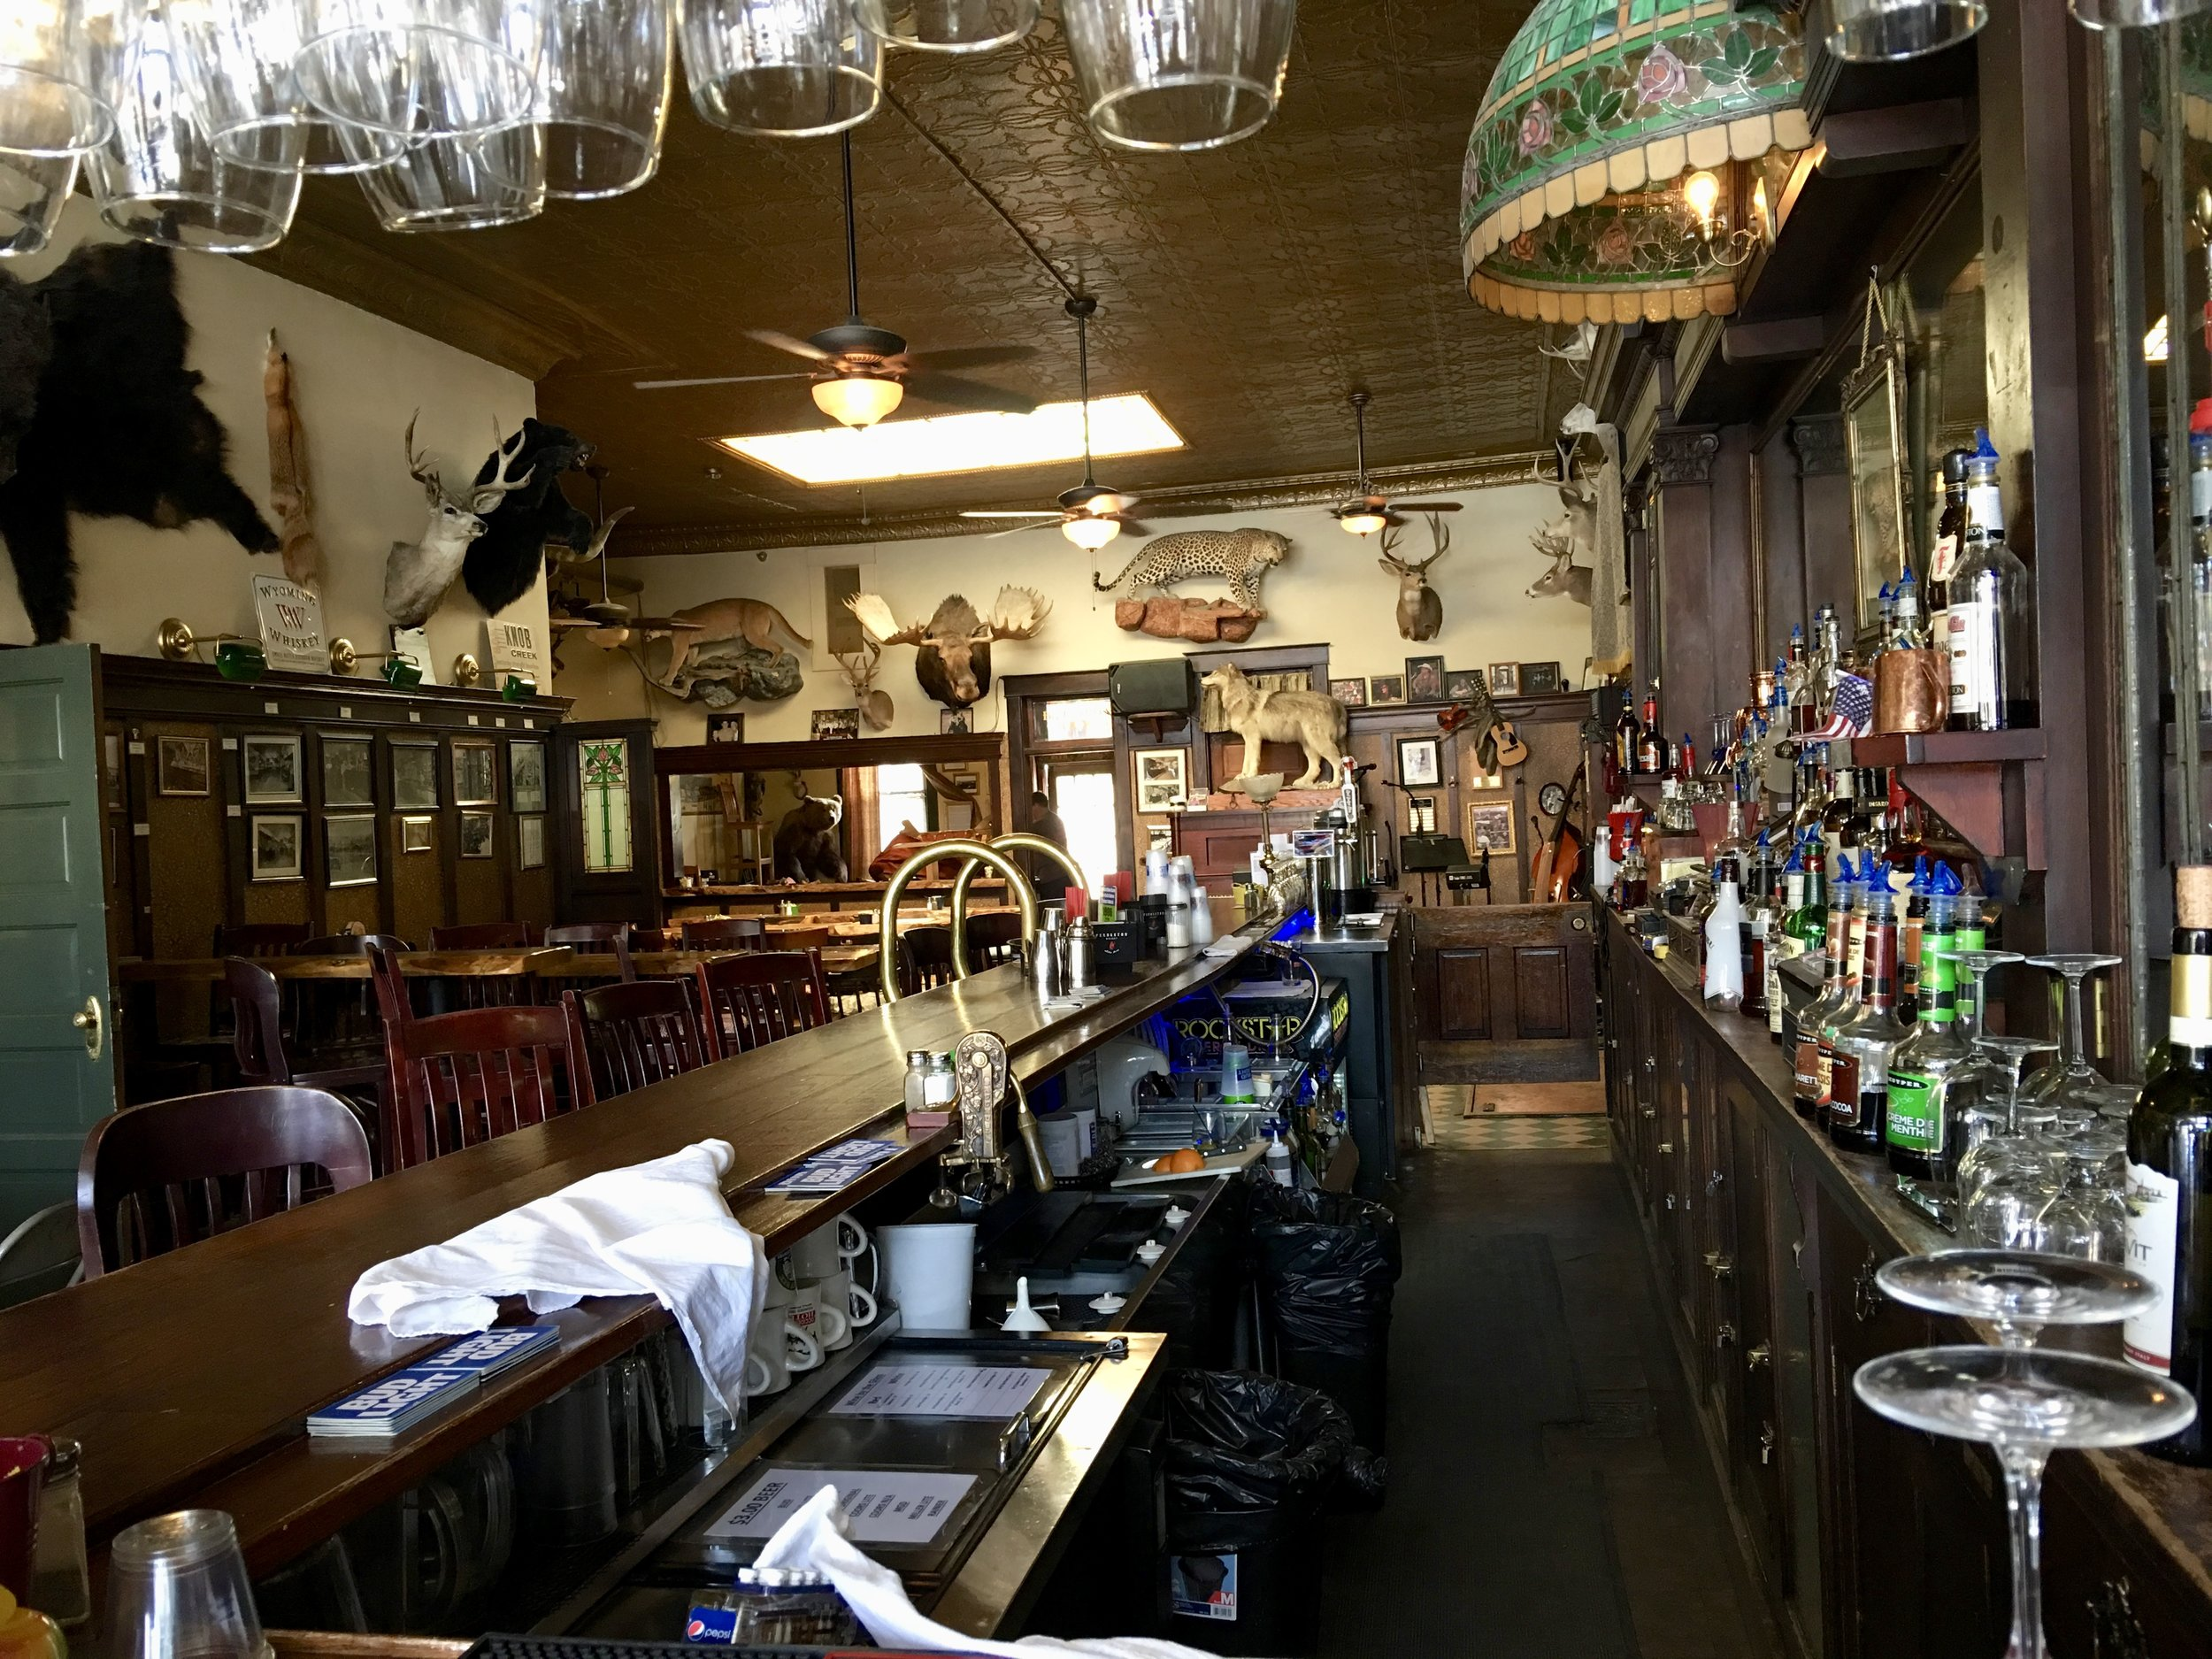 The Occidental saloon, featuring many mounted game animals.